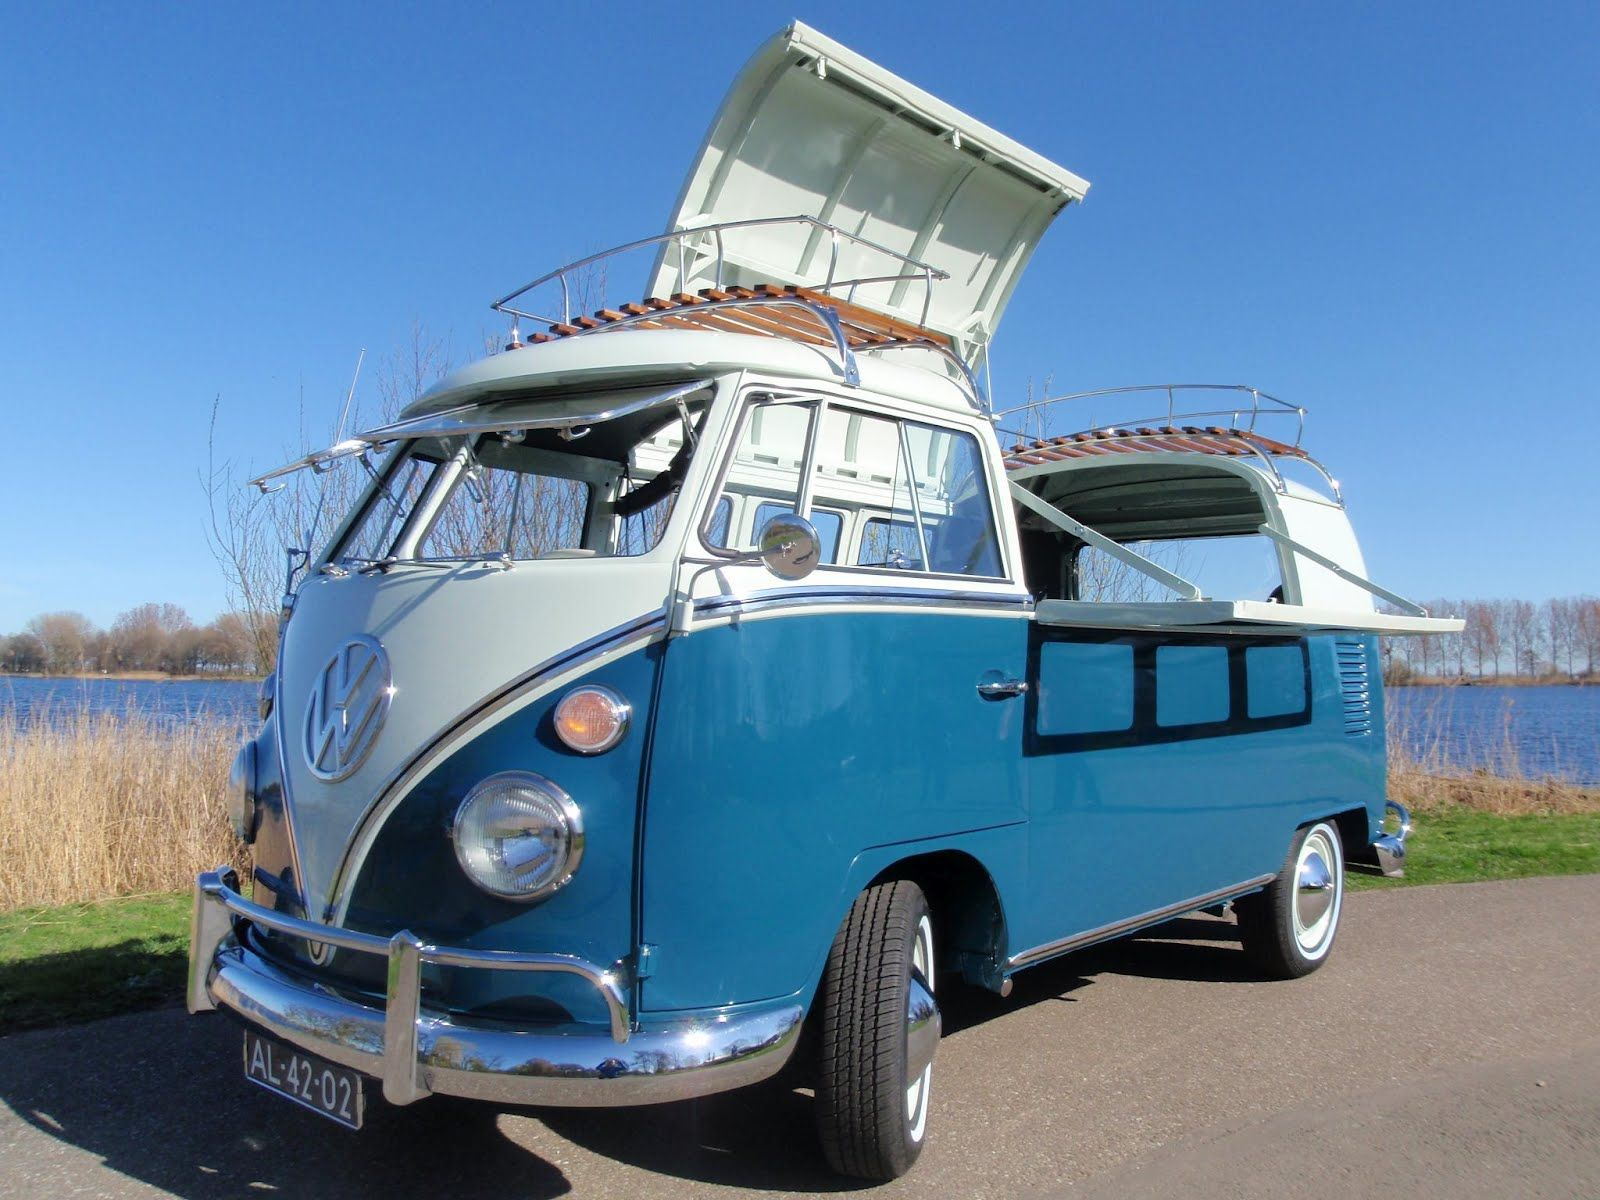 Vw flaptop i have never seen one like this would this be stock or customized volkswagen bus